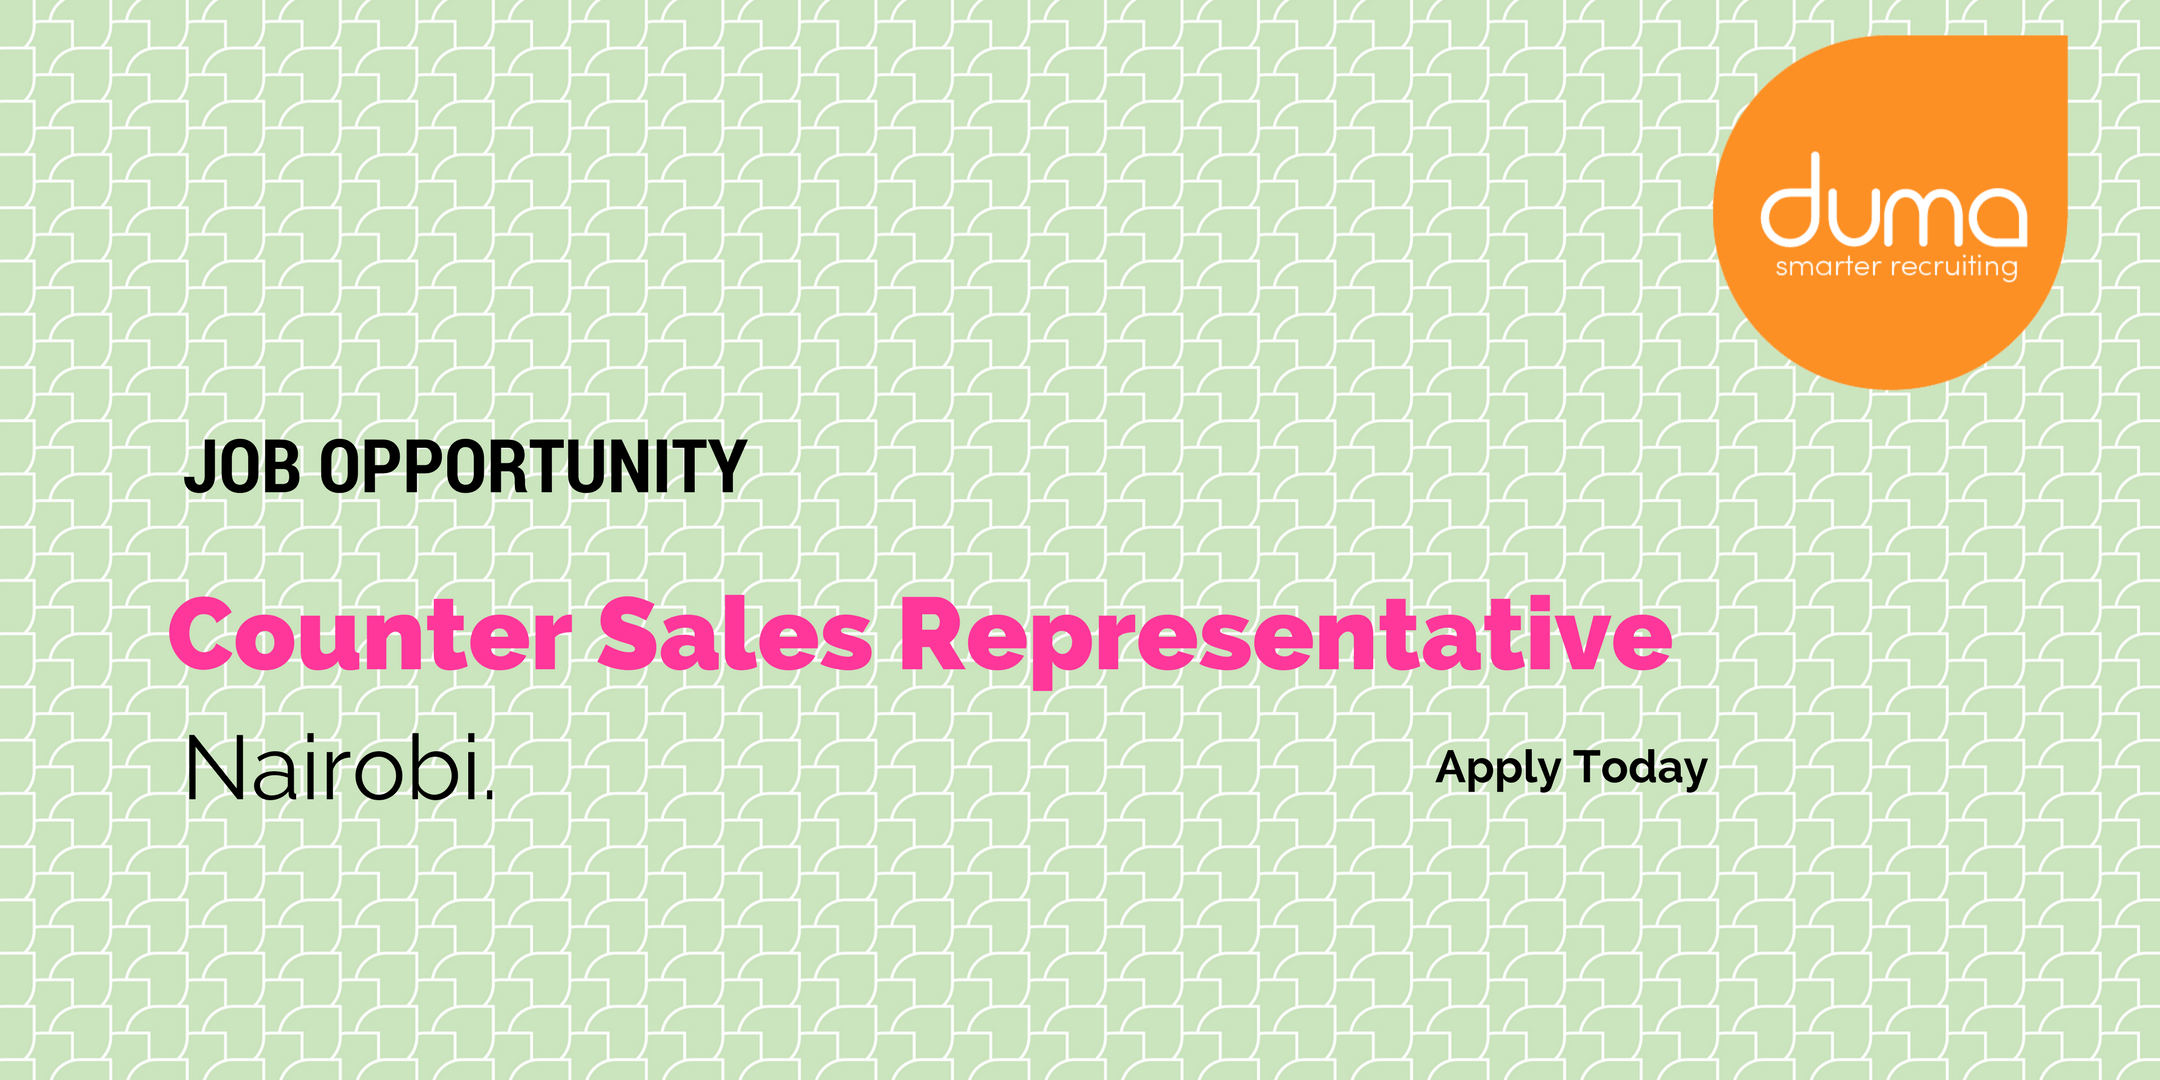 Apply for the Counter Sales Representative Role